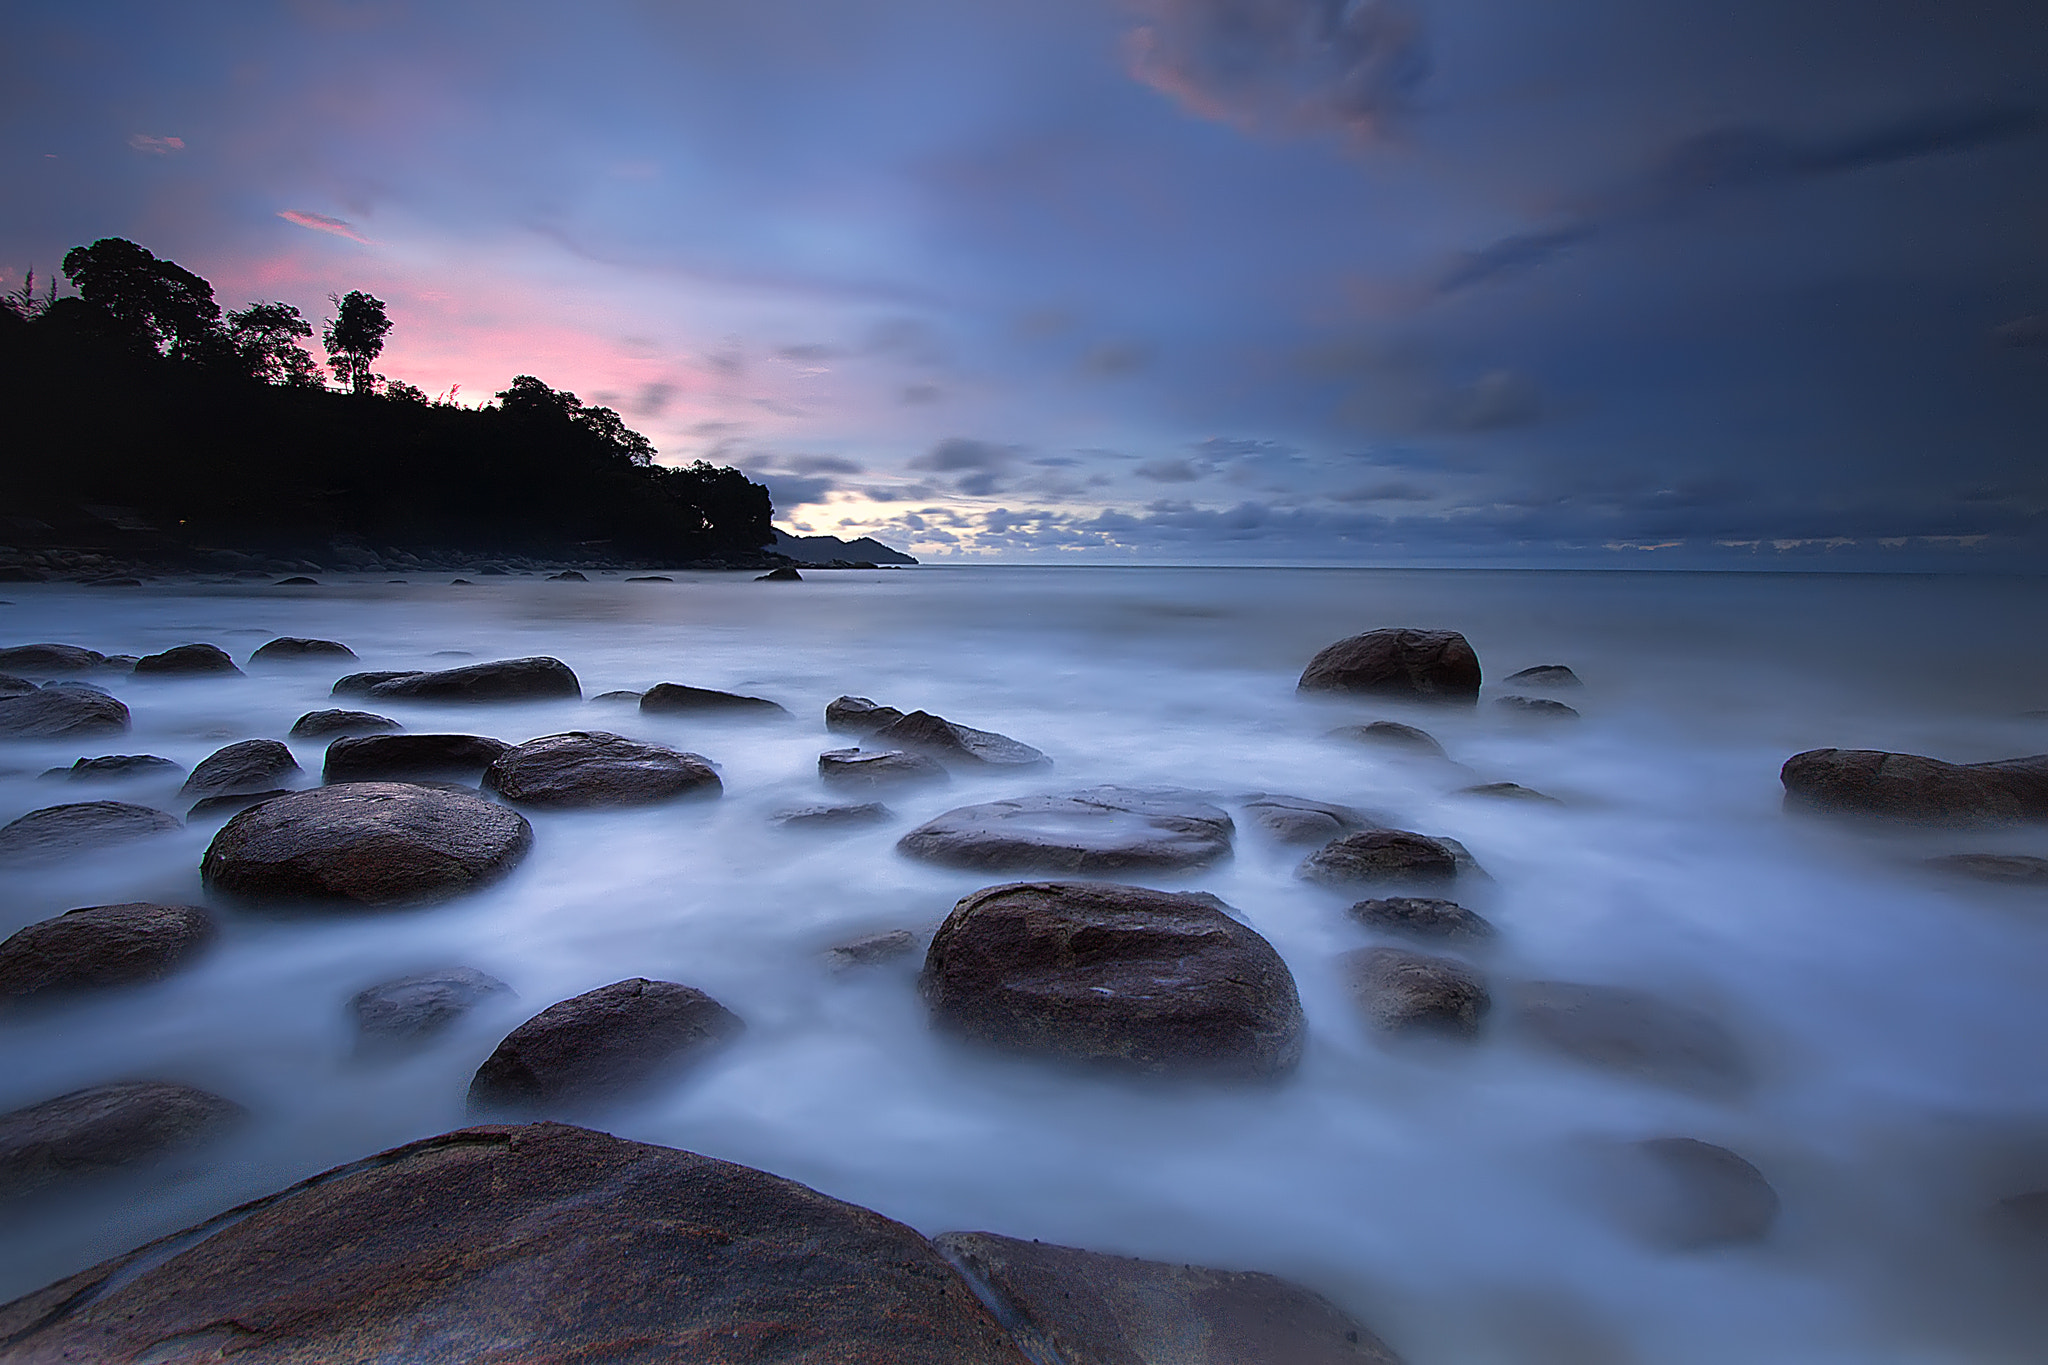 Photograph beauty of singkawang west kalimantan indonesia by Hendra Heng on 500px